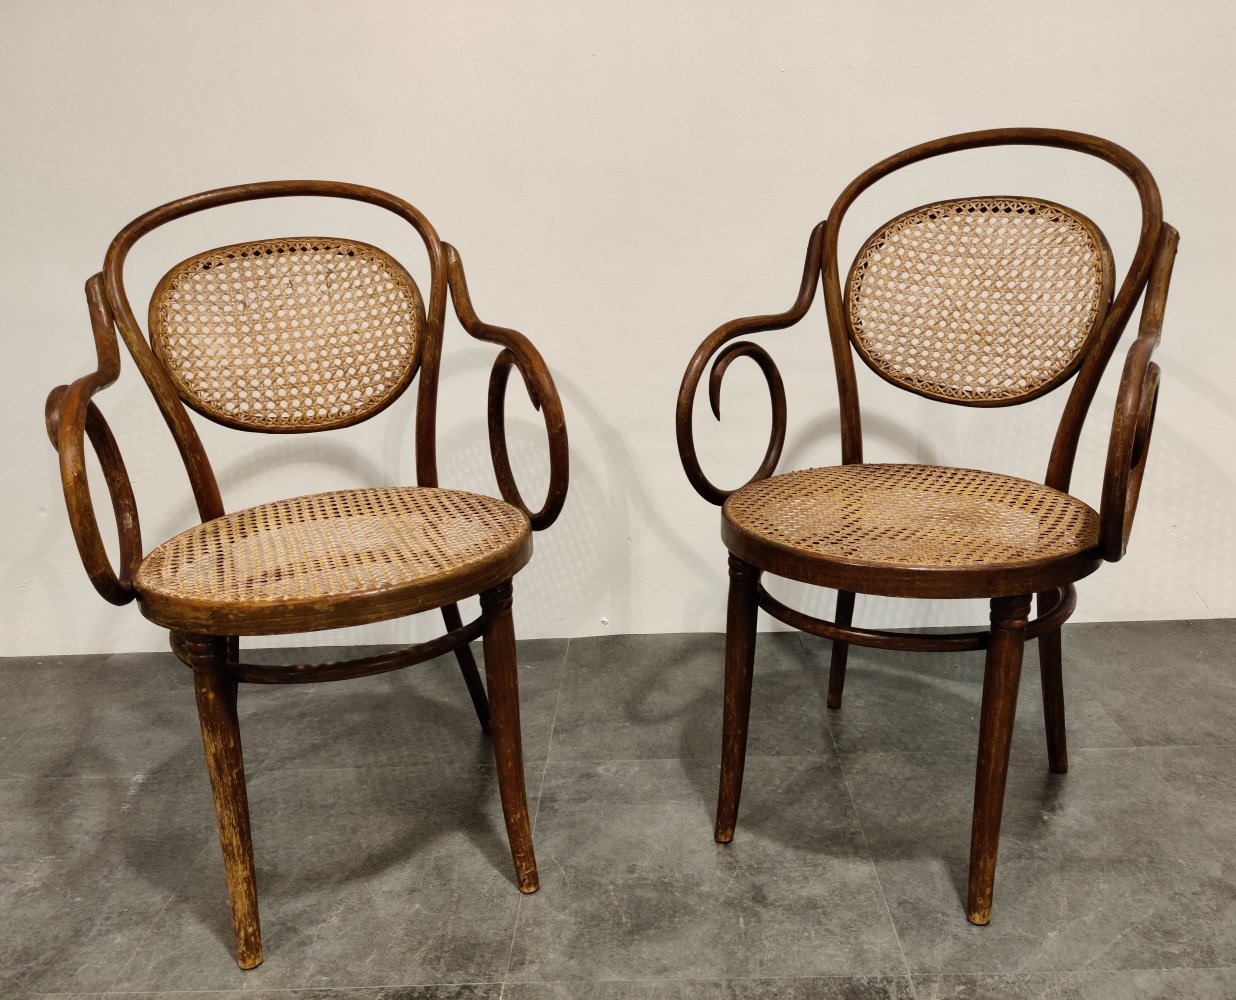 Pair of bentwood armchairs by ZPM Radomsko, 1920s